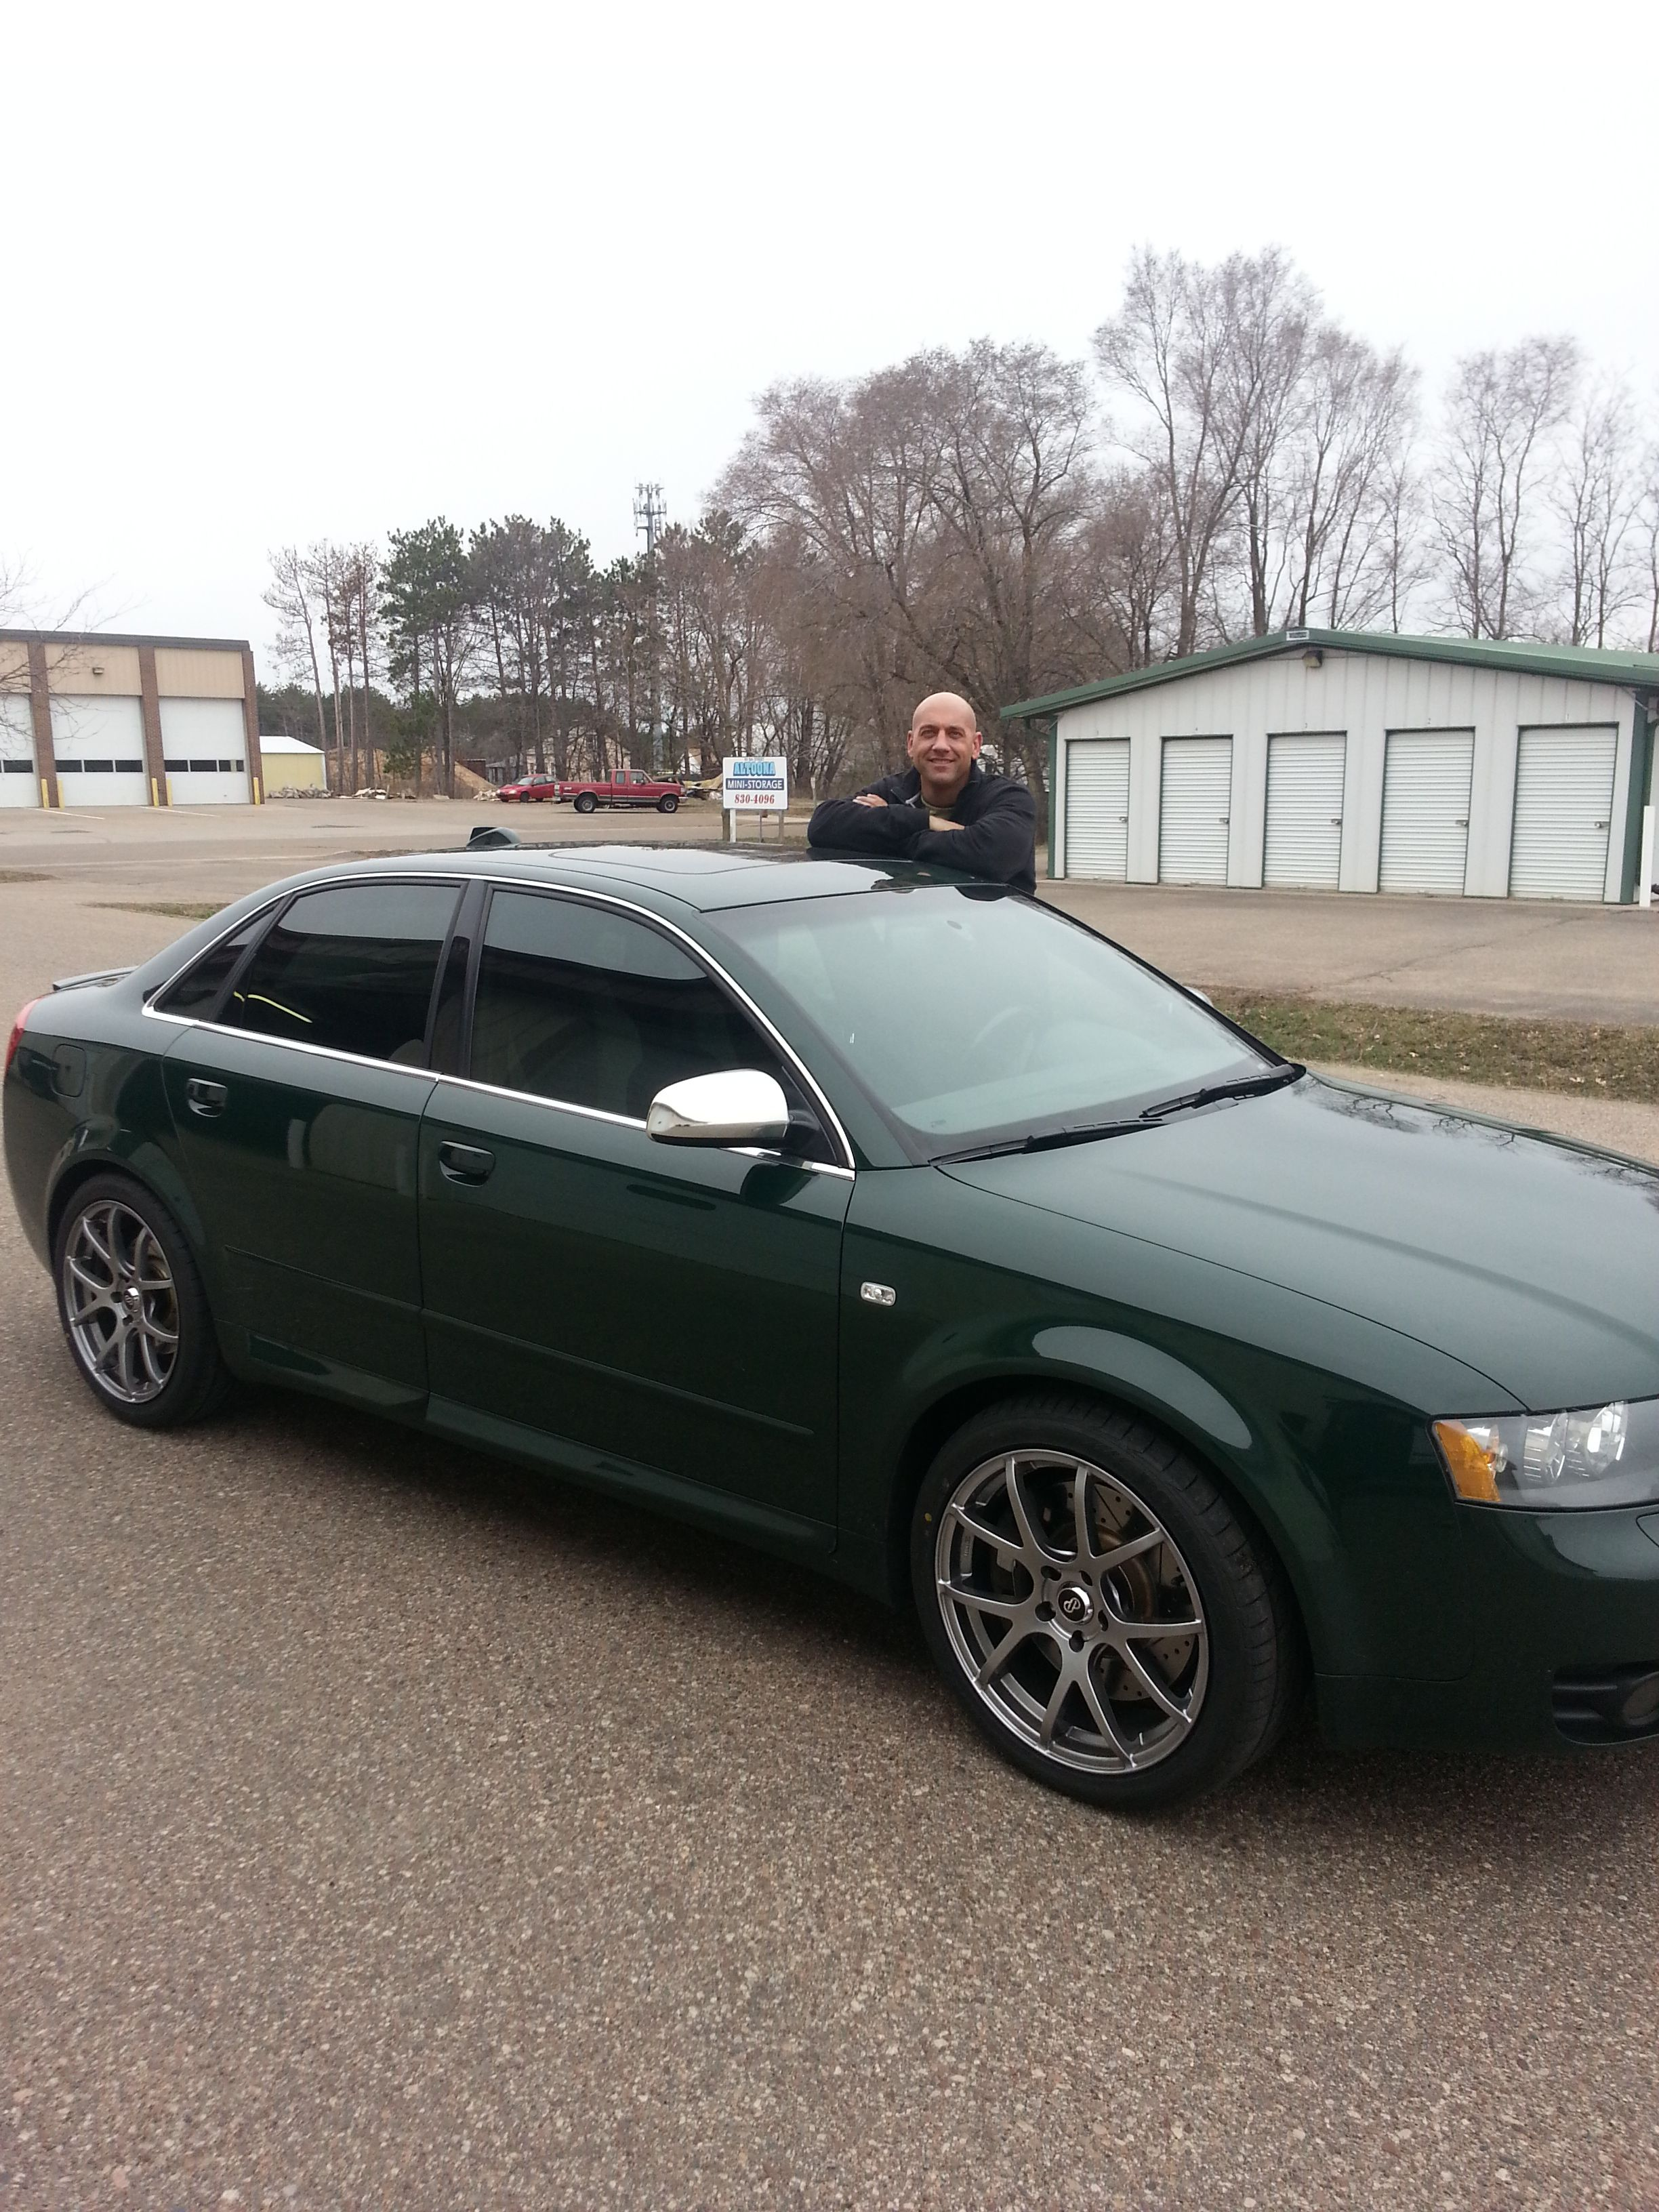 Another happy customer~!  This scorpion film will make your ride look better!!!!